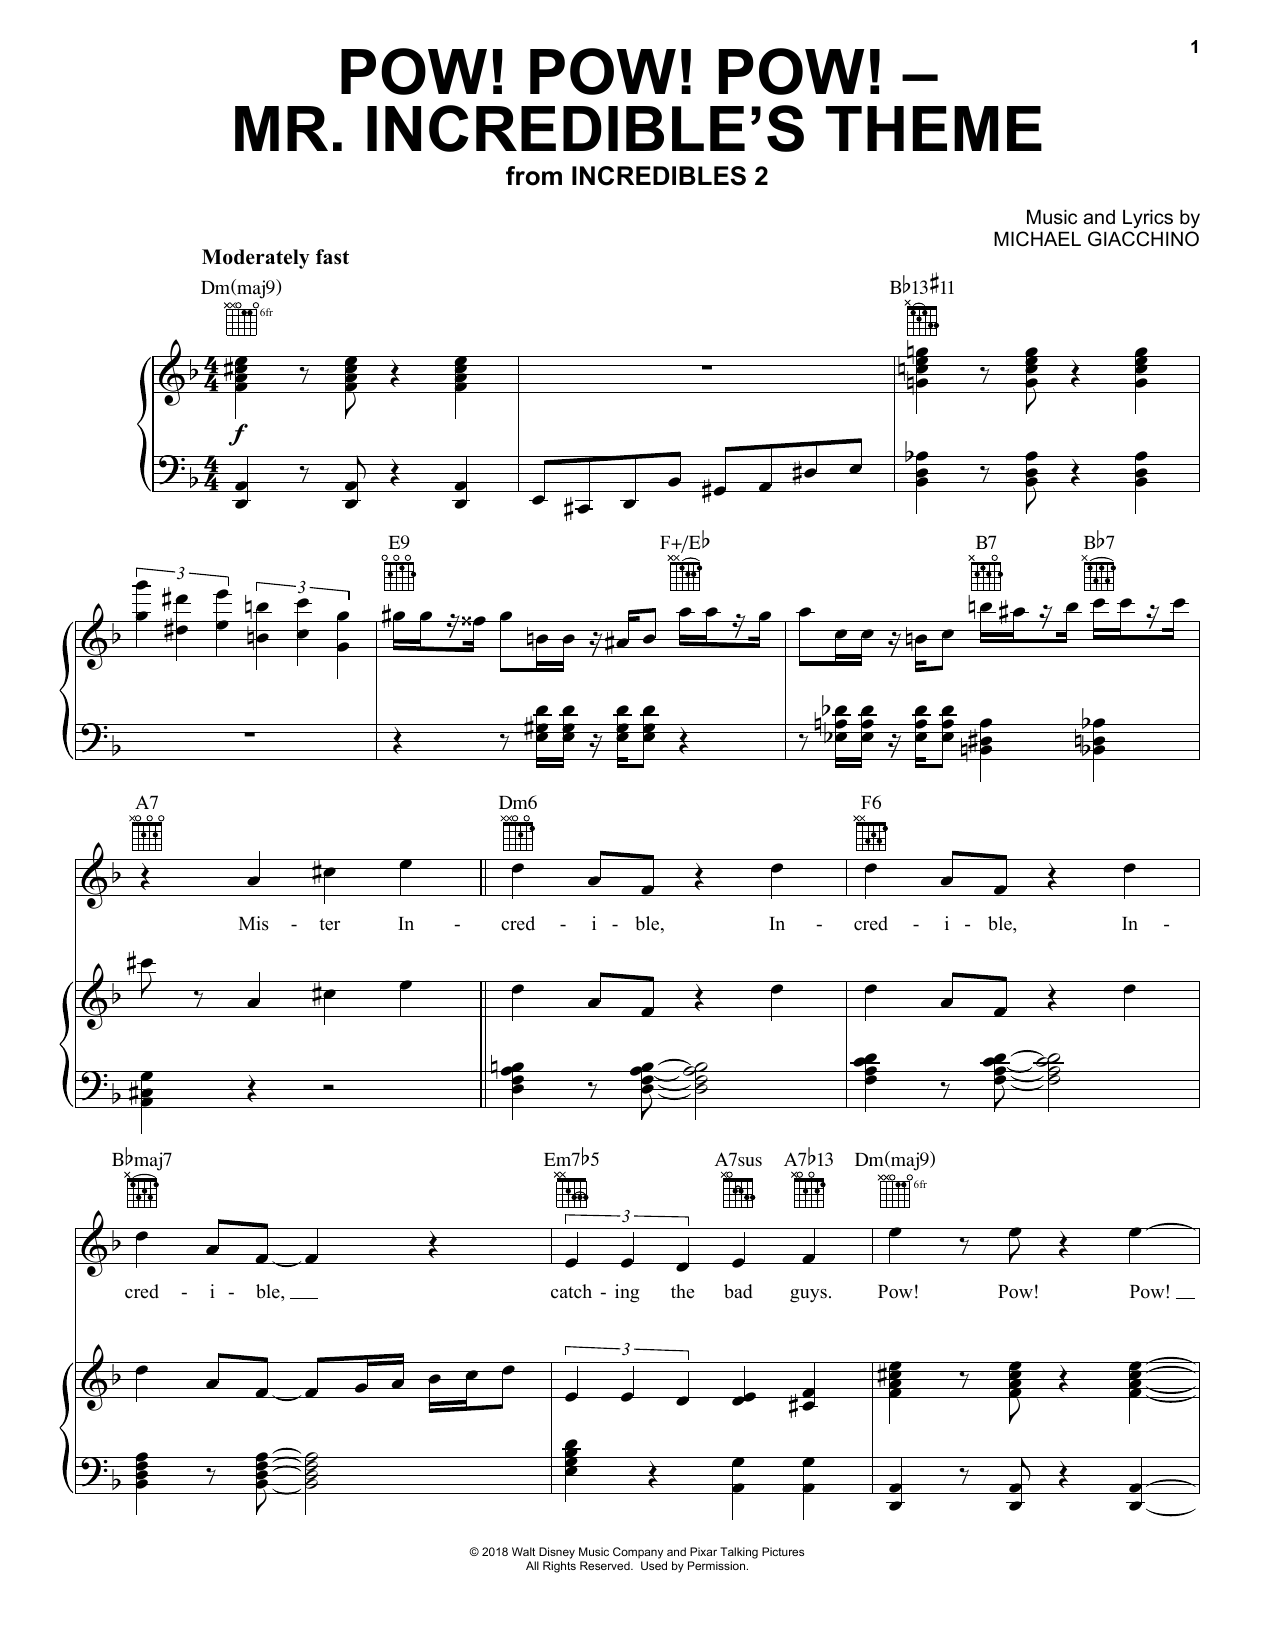 Sheet Music Digital Files To Print Licensed Disney Digital Sheet Music